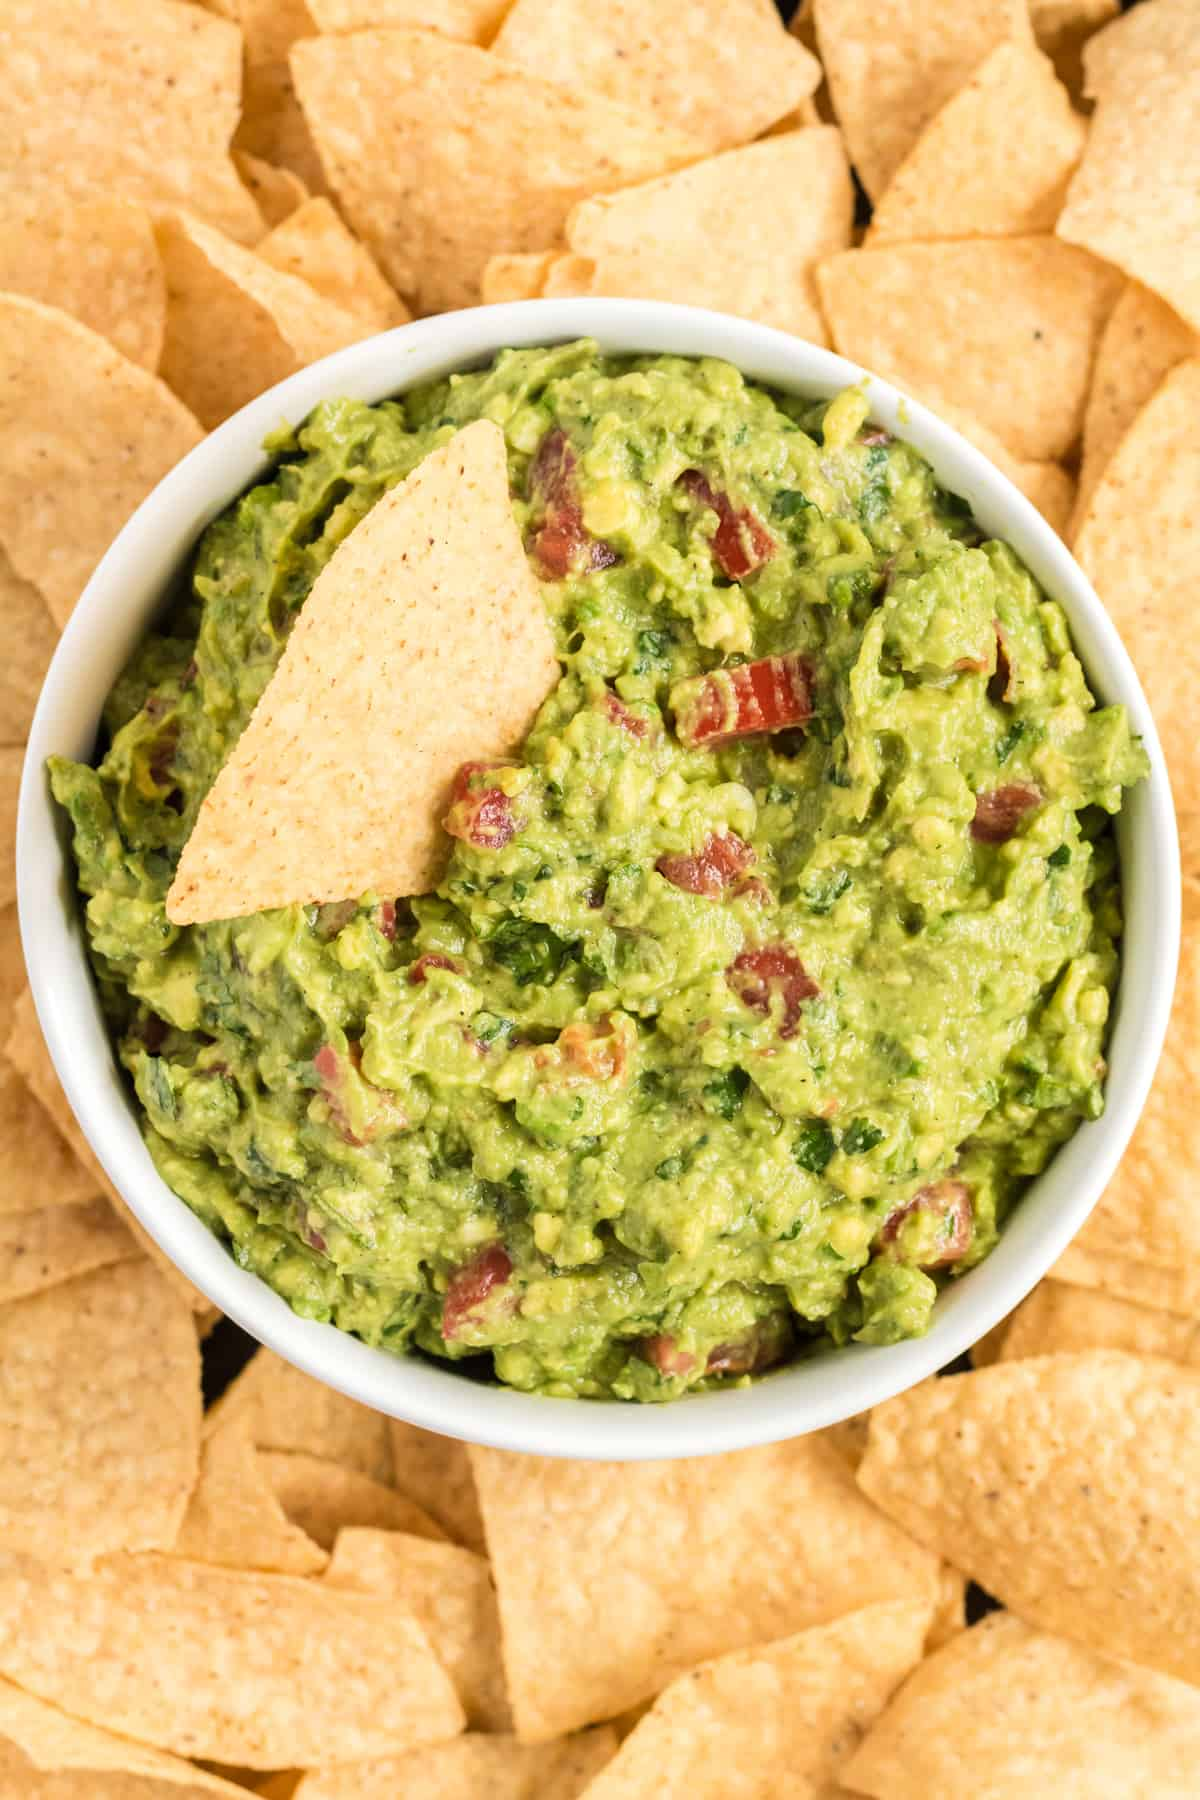 guacamole in a bowl on a platter surrounded by tortilla chips